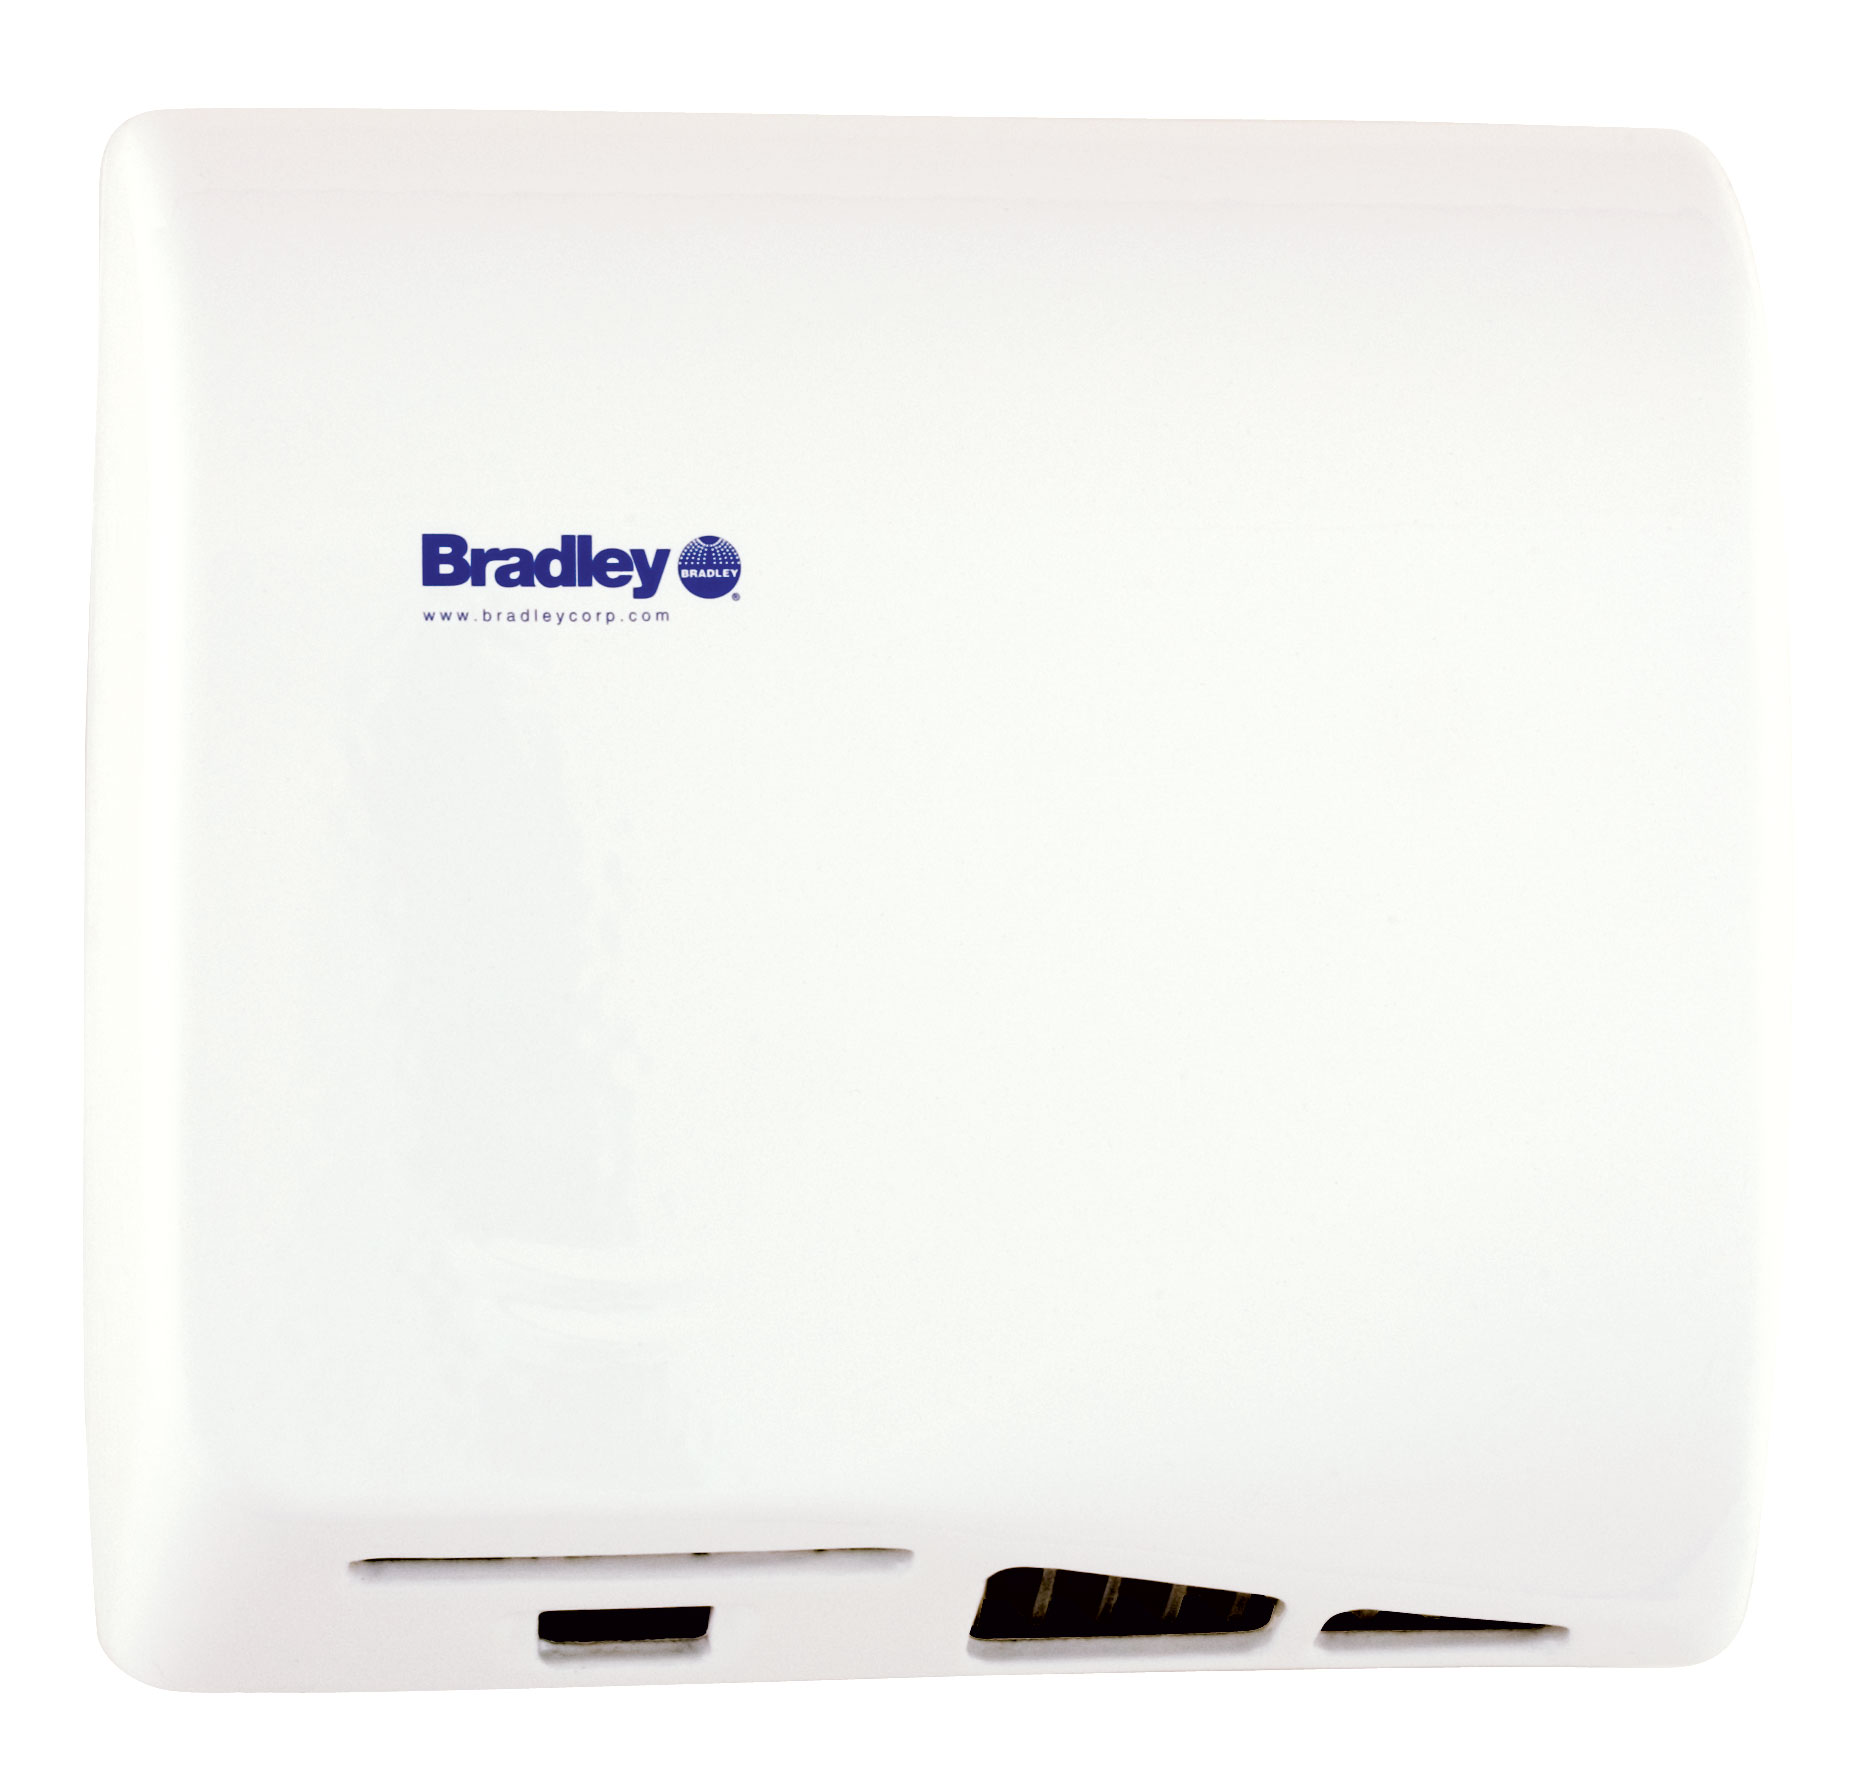 Bradley Aerix 2902-28 White Adjustable Sensor-Operated Hand Dryer